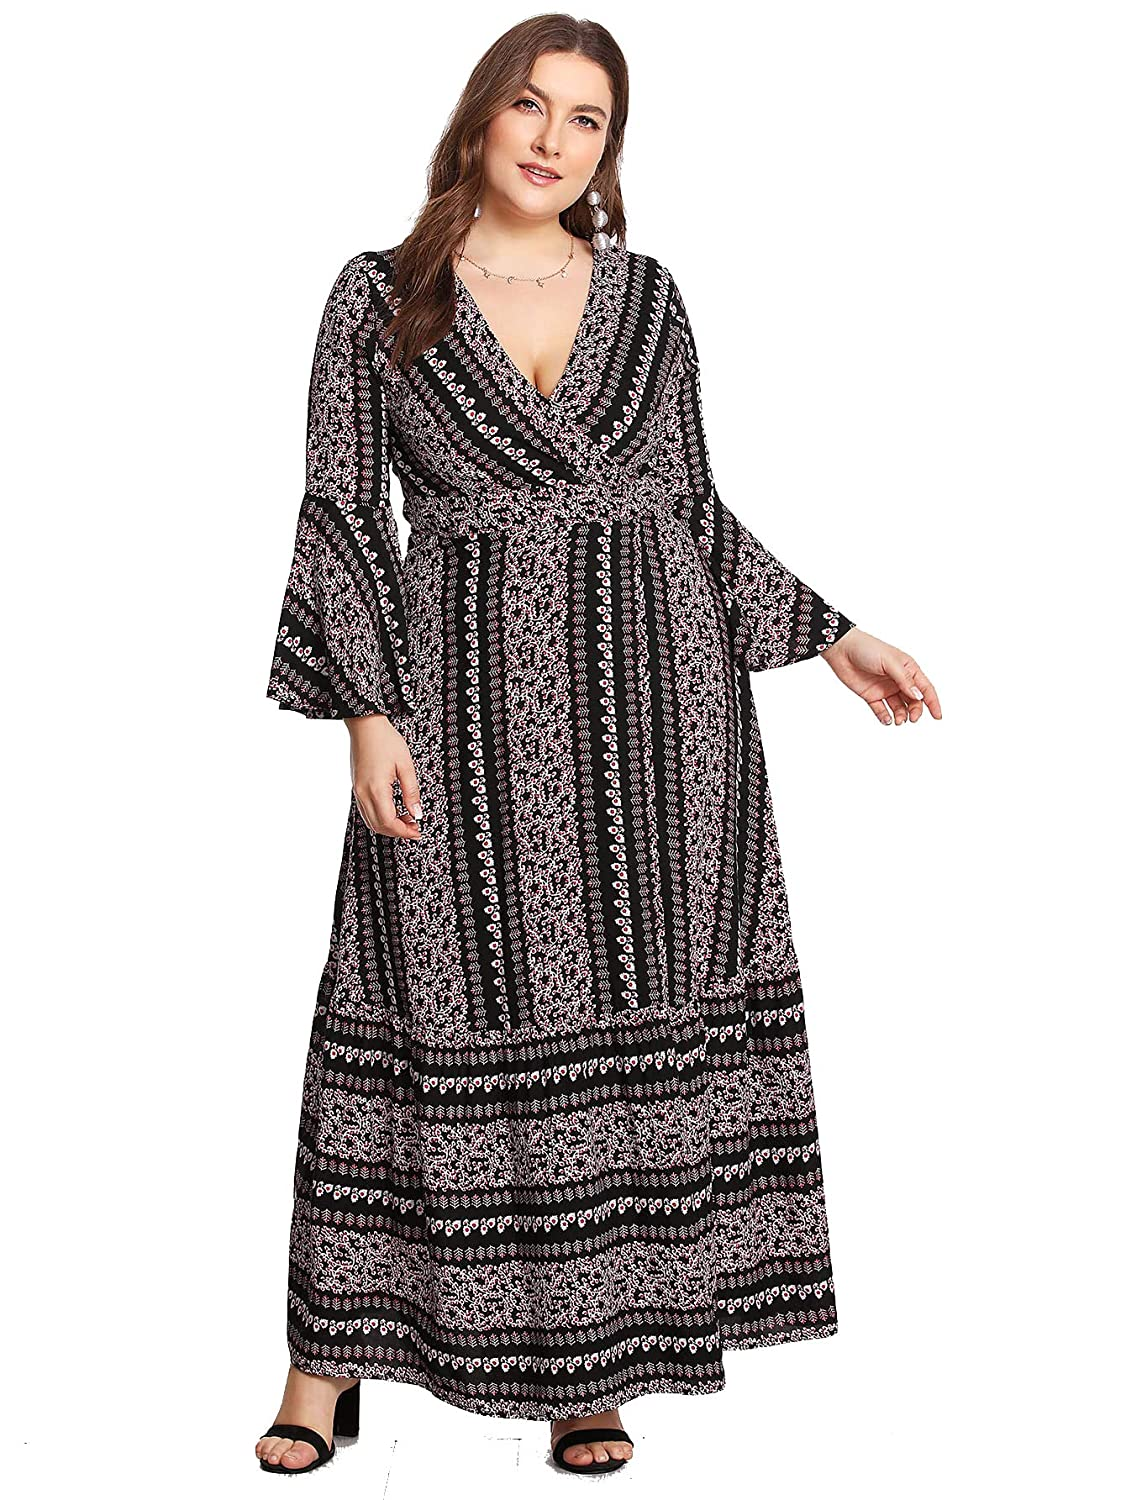 e7e67e8d0c14d Milumia Plus Size Party Dress Flounce Flared Long Sleeves Maxi Dress  Evening Night Out Dress at Amazon Women s Clothing store